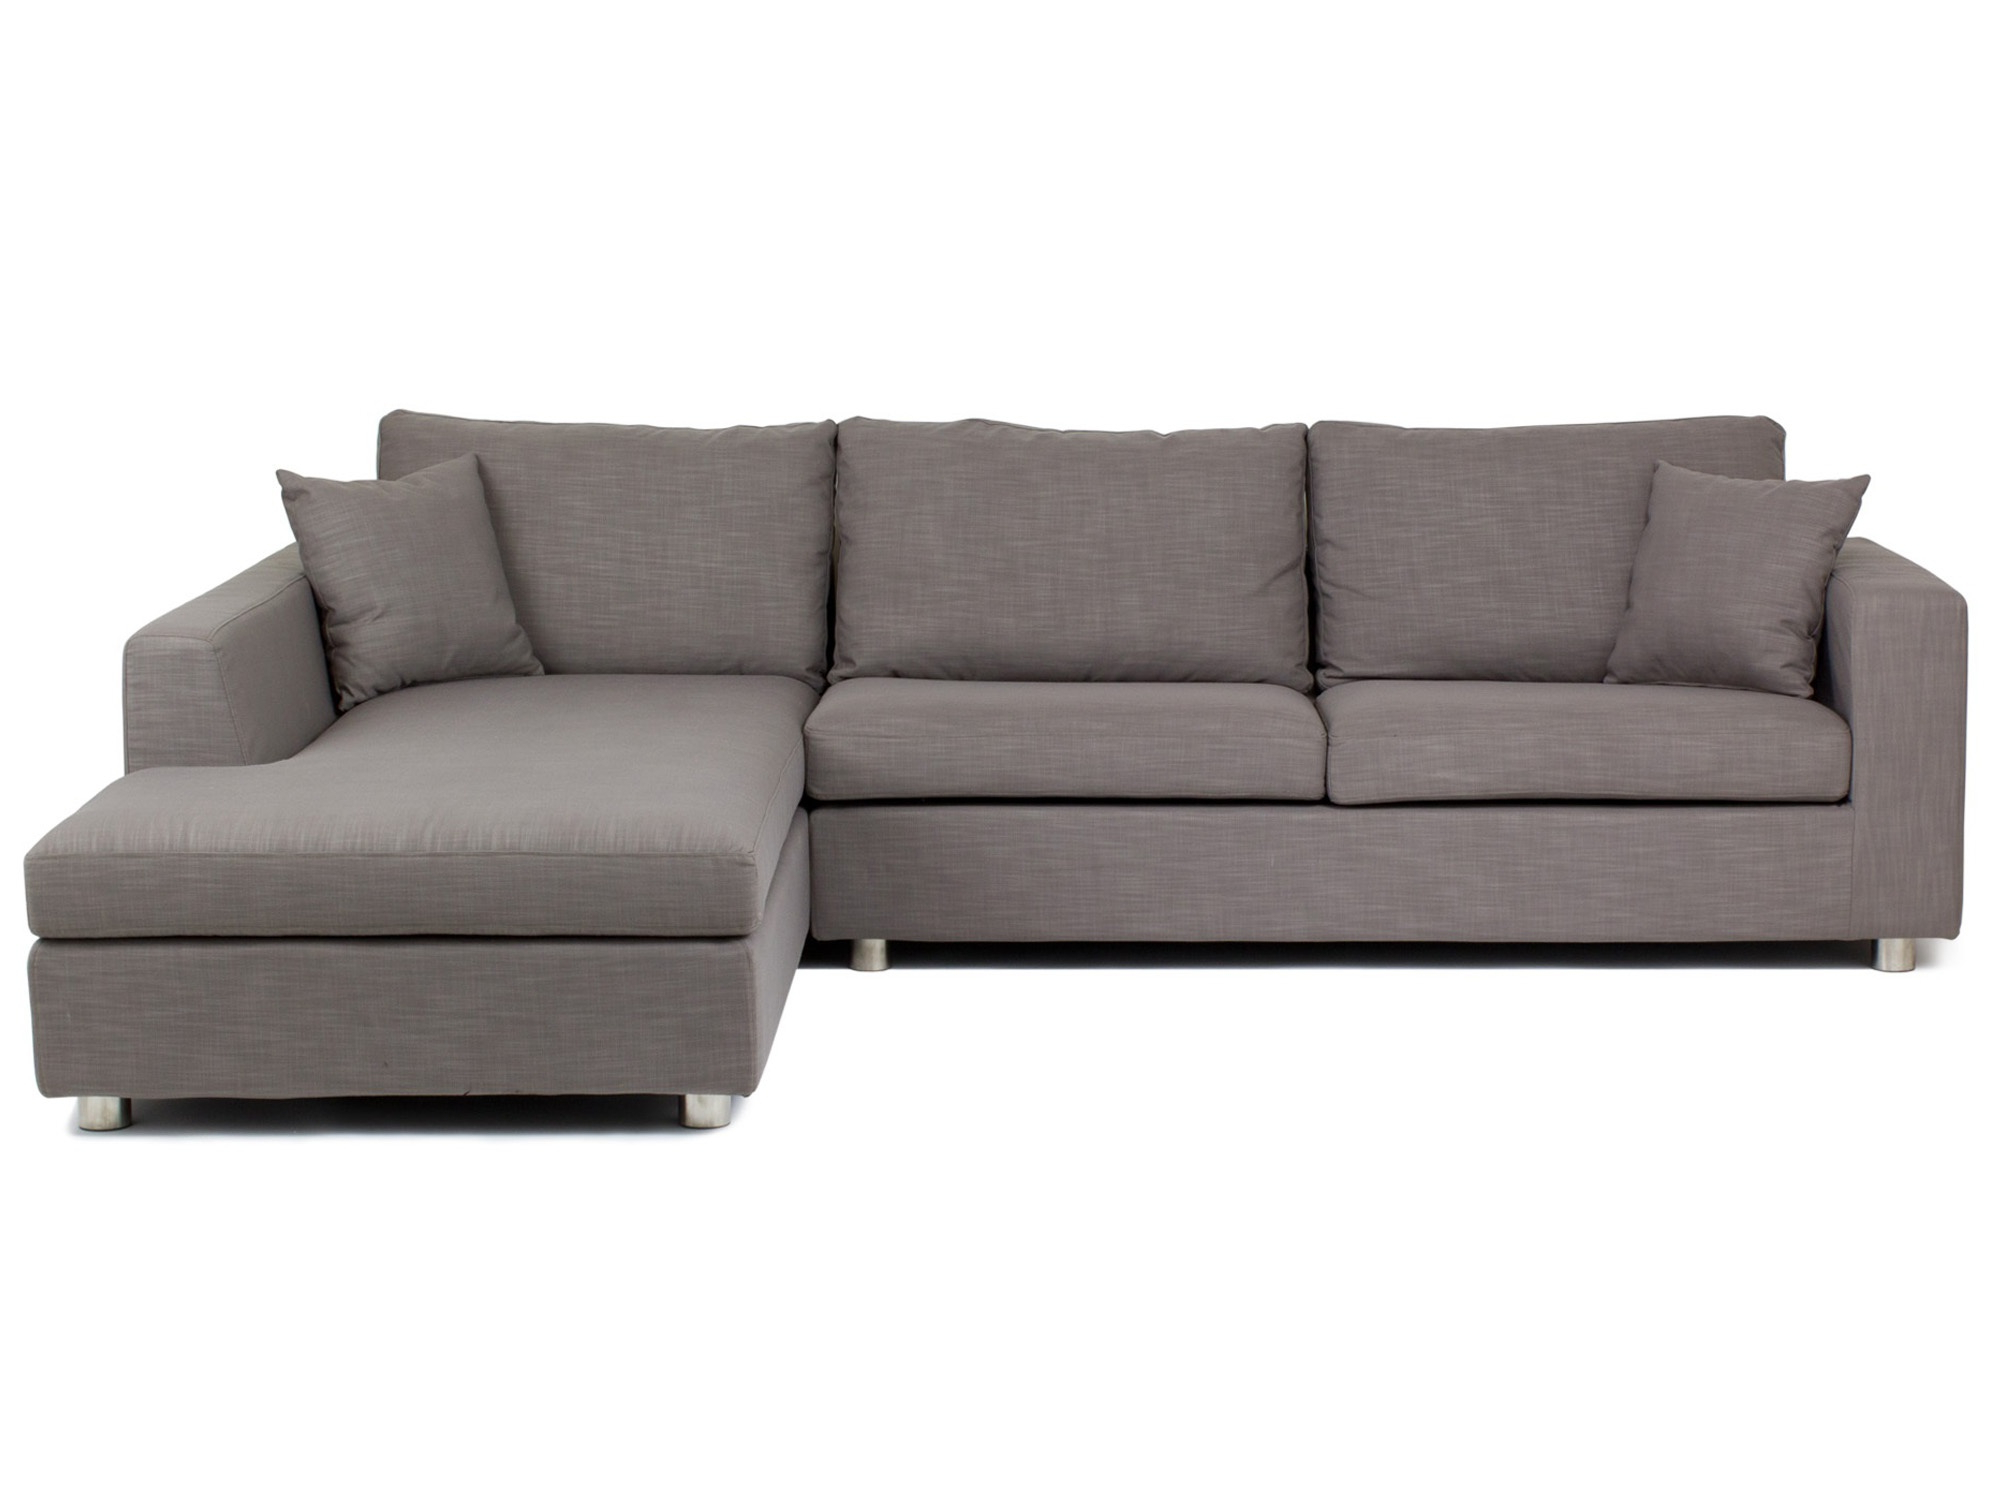 Sofa Sofa Bed With Storage Chaise Sectional Sofa Bed With Ideas In Well Liked Taren Reversible Sofa/chaise Sleeper Sectionals With Storage Ottoman (View 11 of 20)